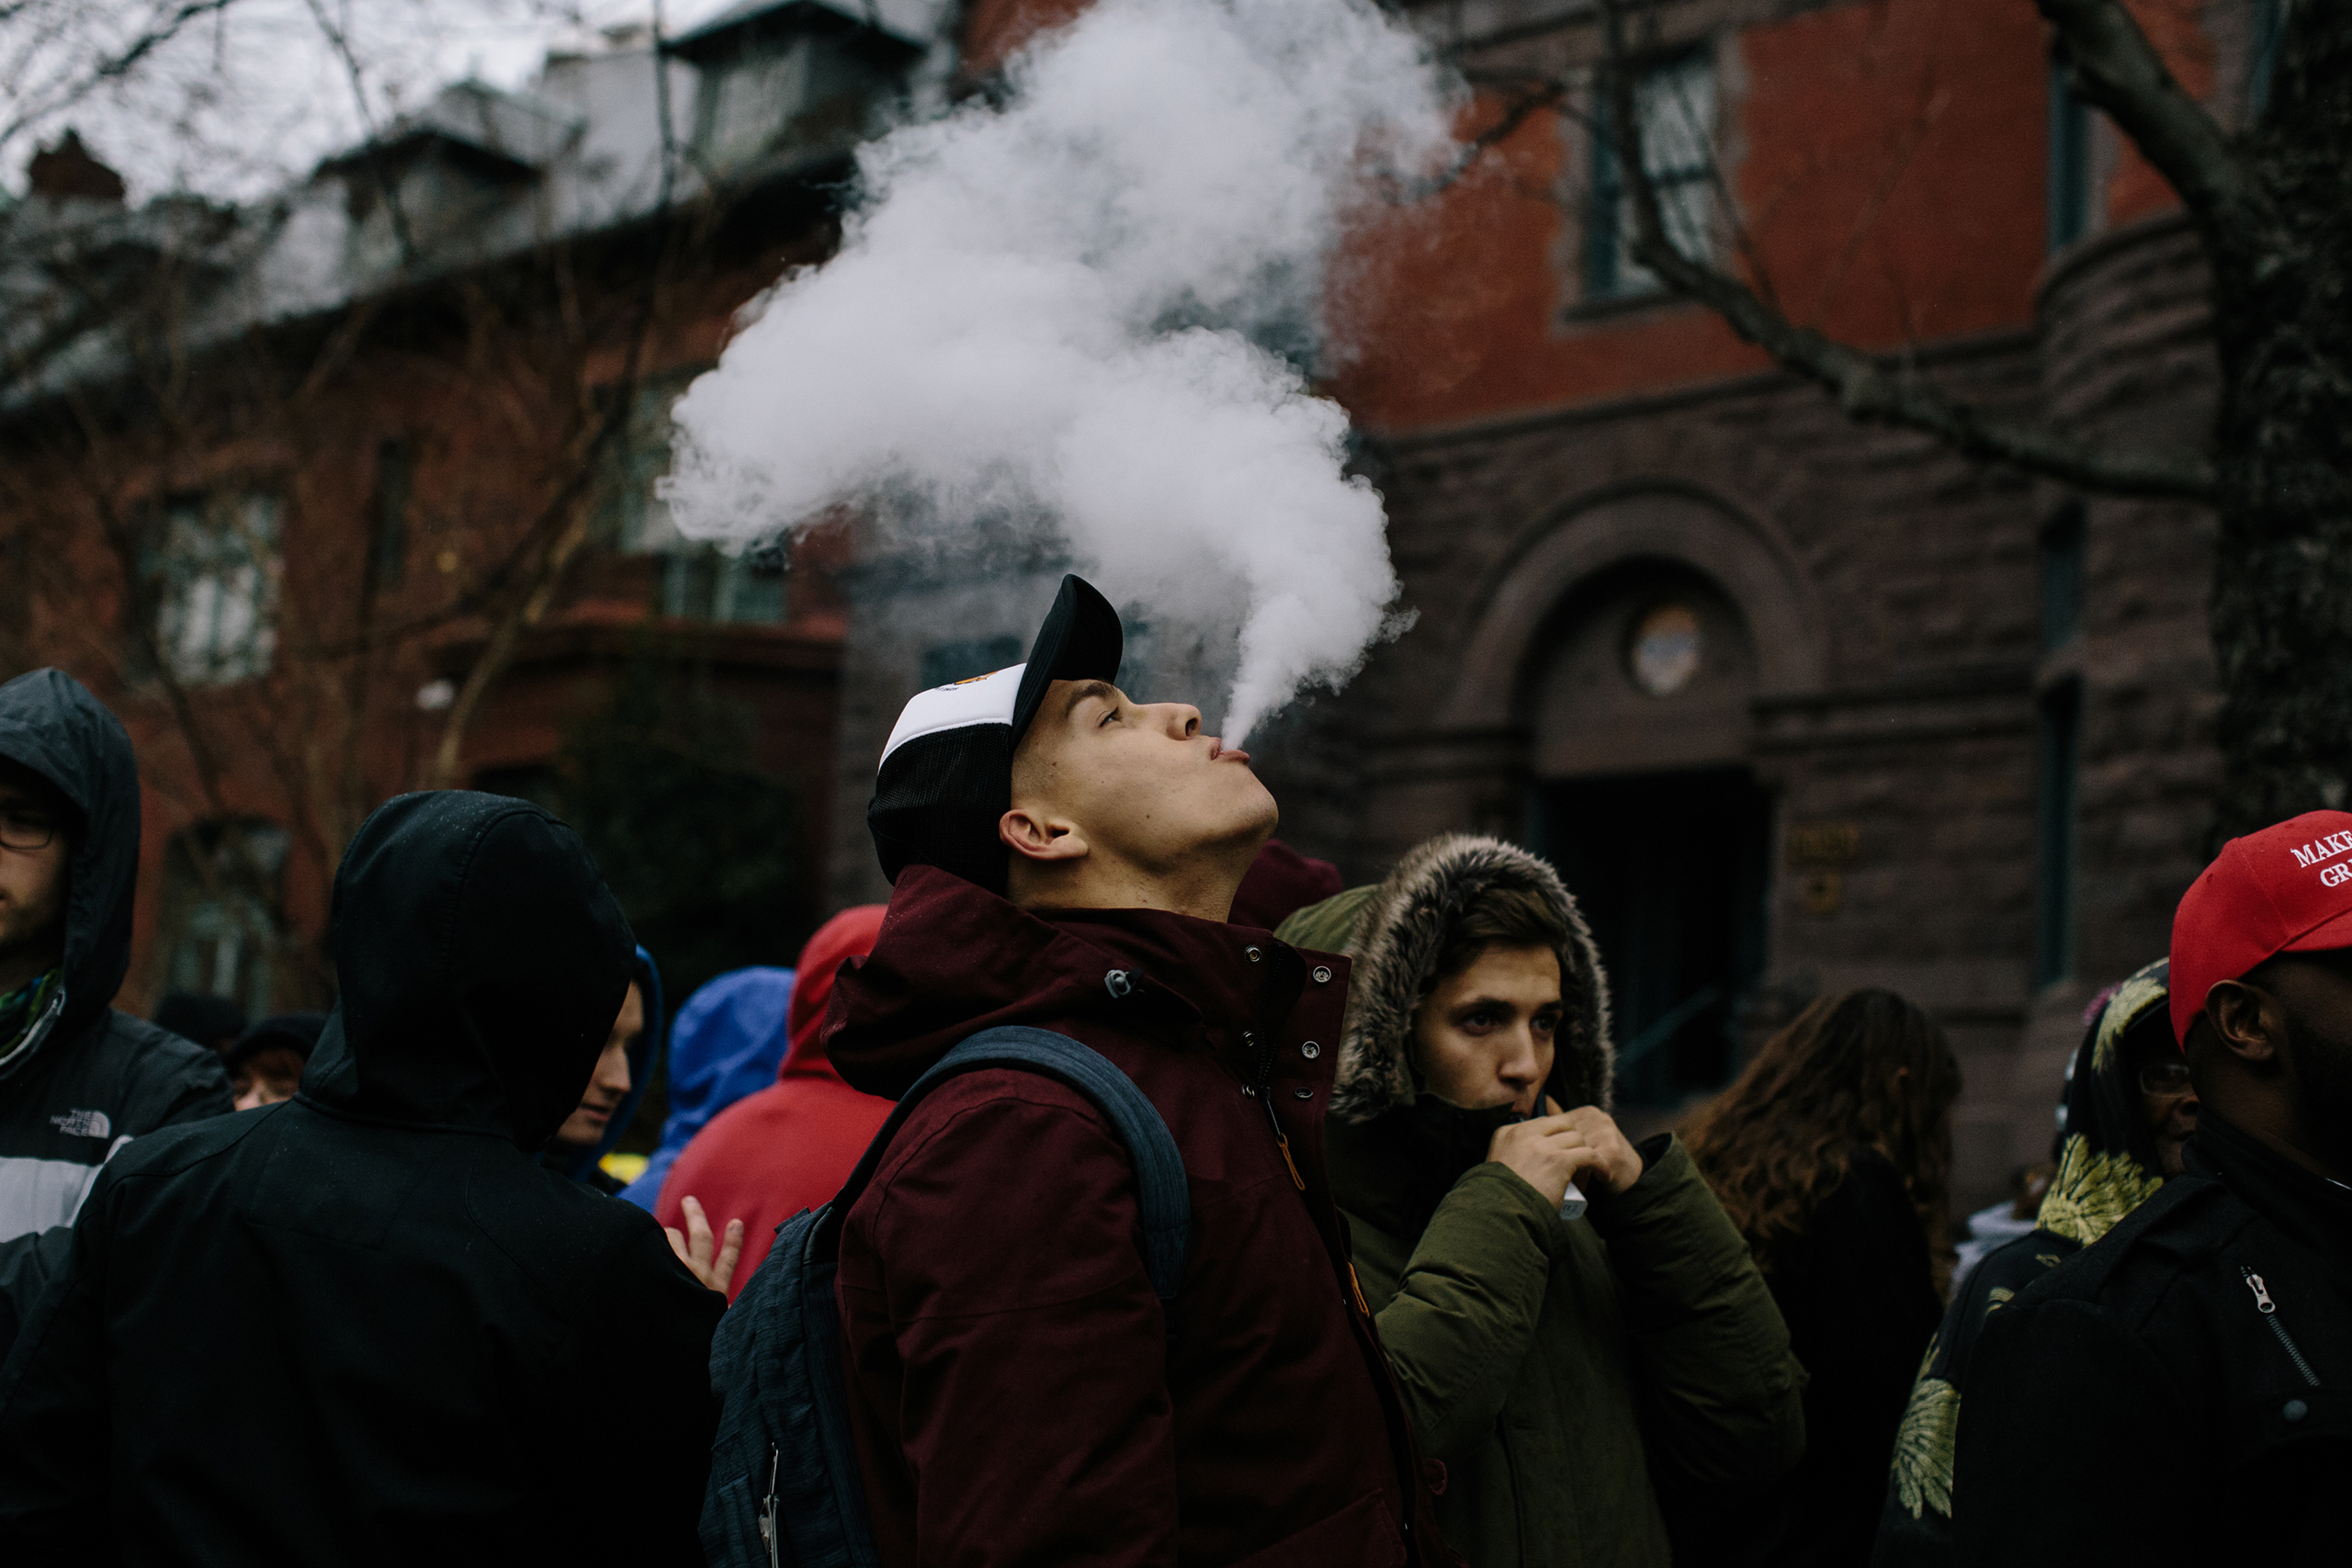 Dmytro Karaban, 21, from New York City, blows vape smoke while waiting in line for a free joint Friday during the #Trump420 event in Washington on Jan. 20, 2017.